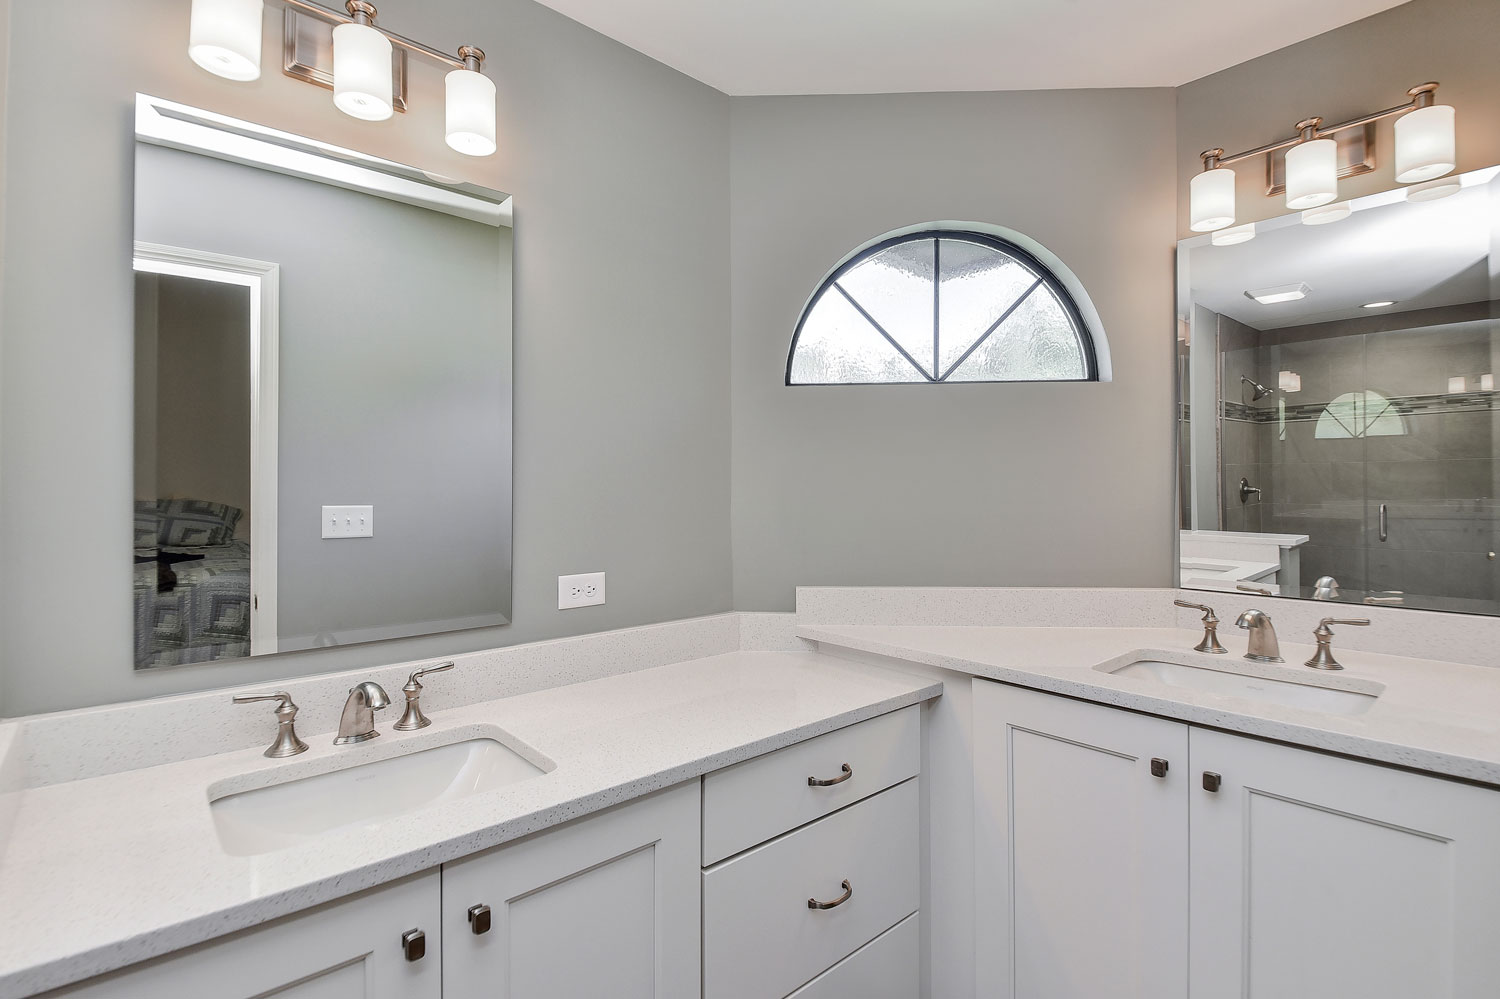 Charles Cindy 39 S Master Bathroom Remodel Pictures Home Remodeling Contractors Sebring Services